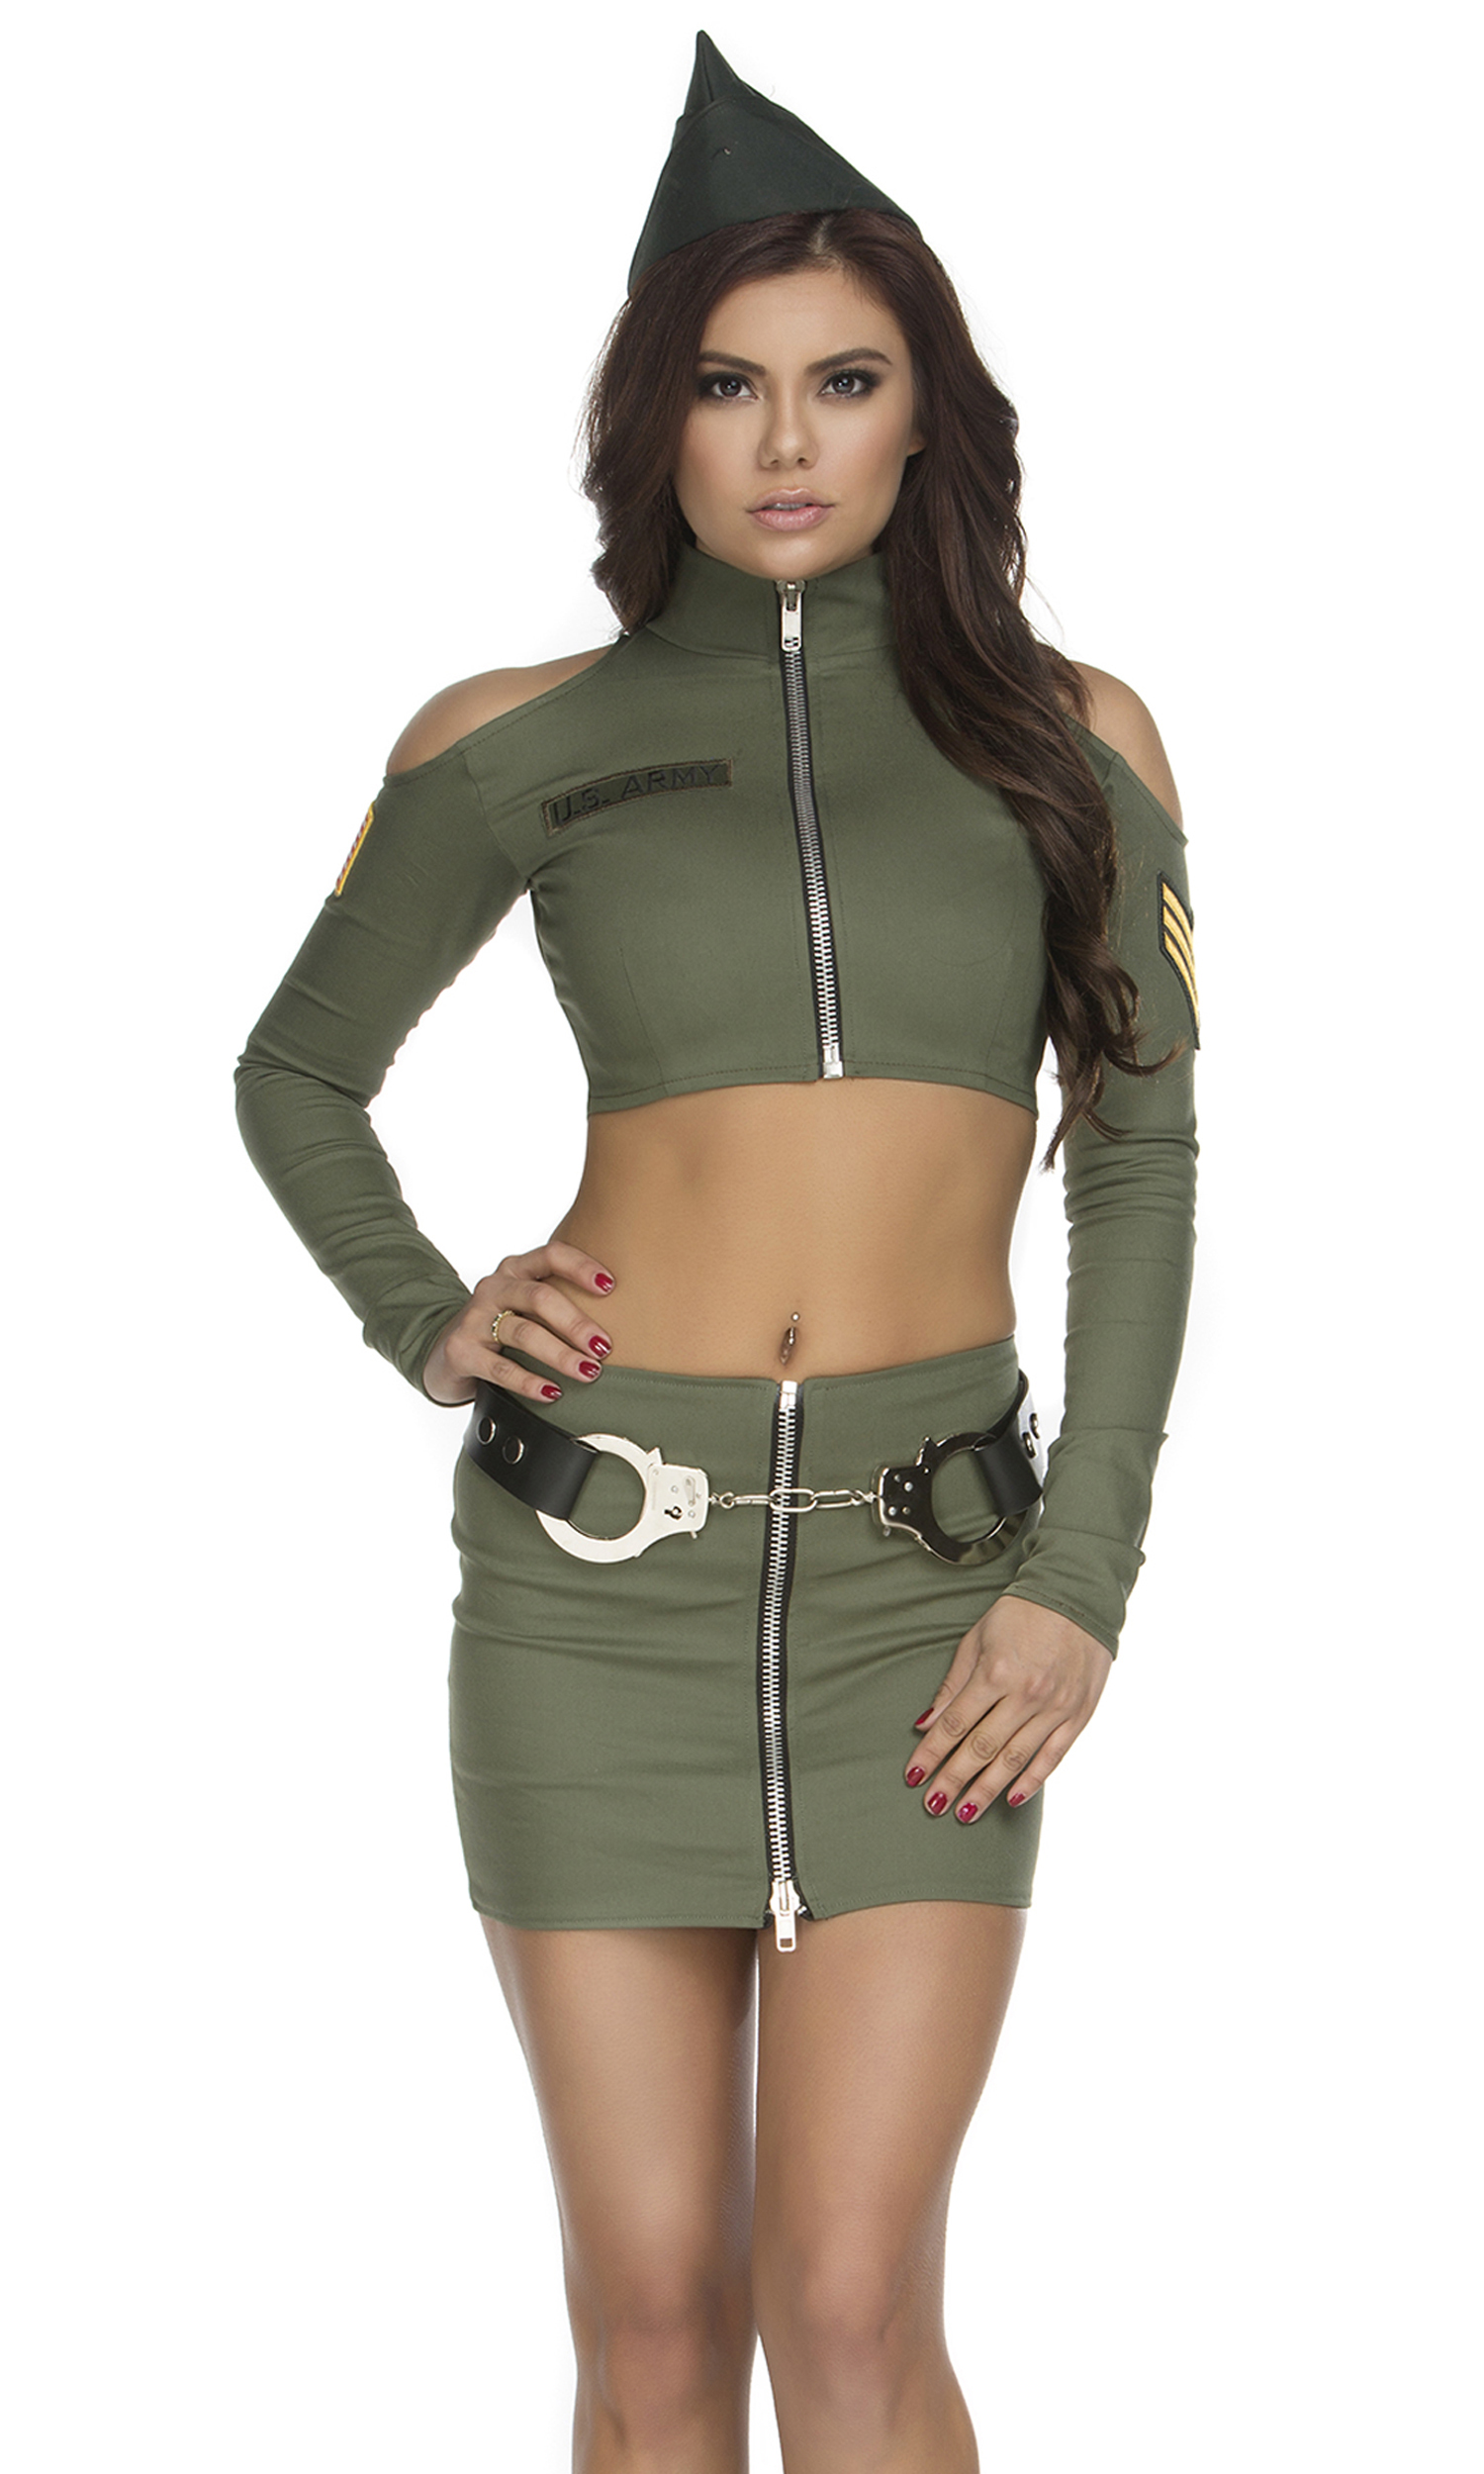 ea4b52be088 Sultry Soldier Sexy Costume